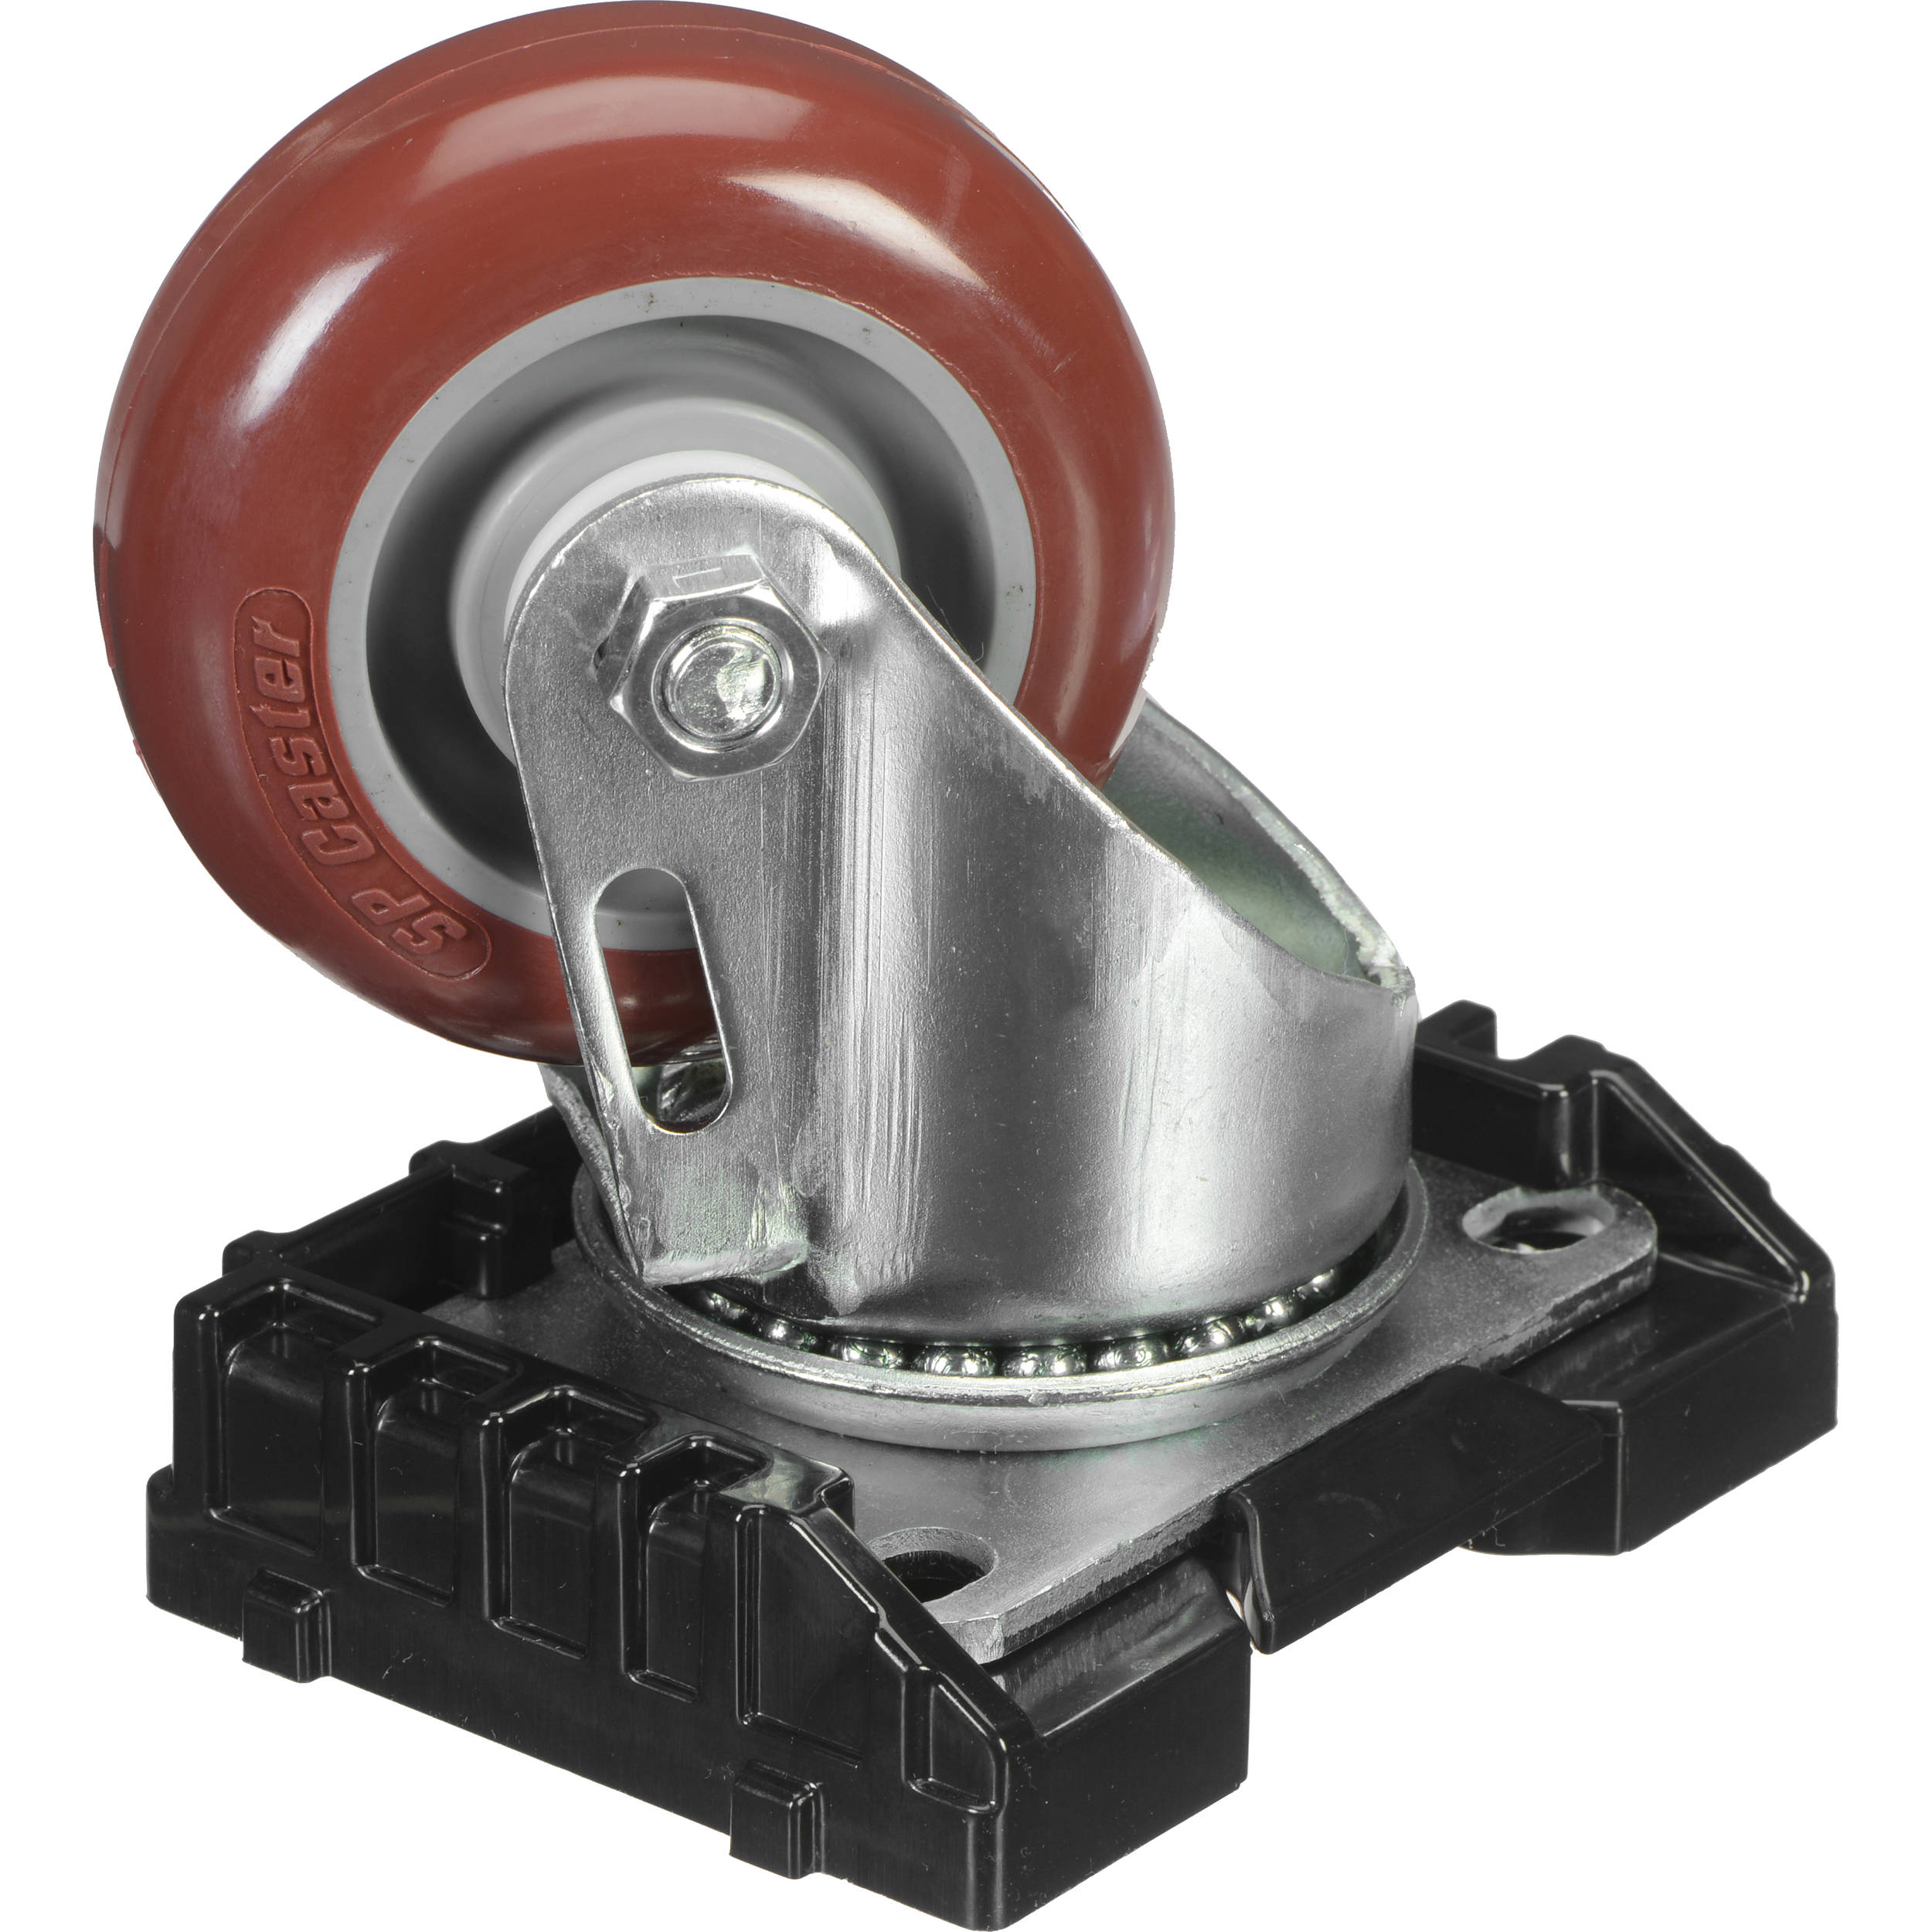 Casters Industrial Casters Marshall Casters For 1960a Cabinet